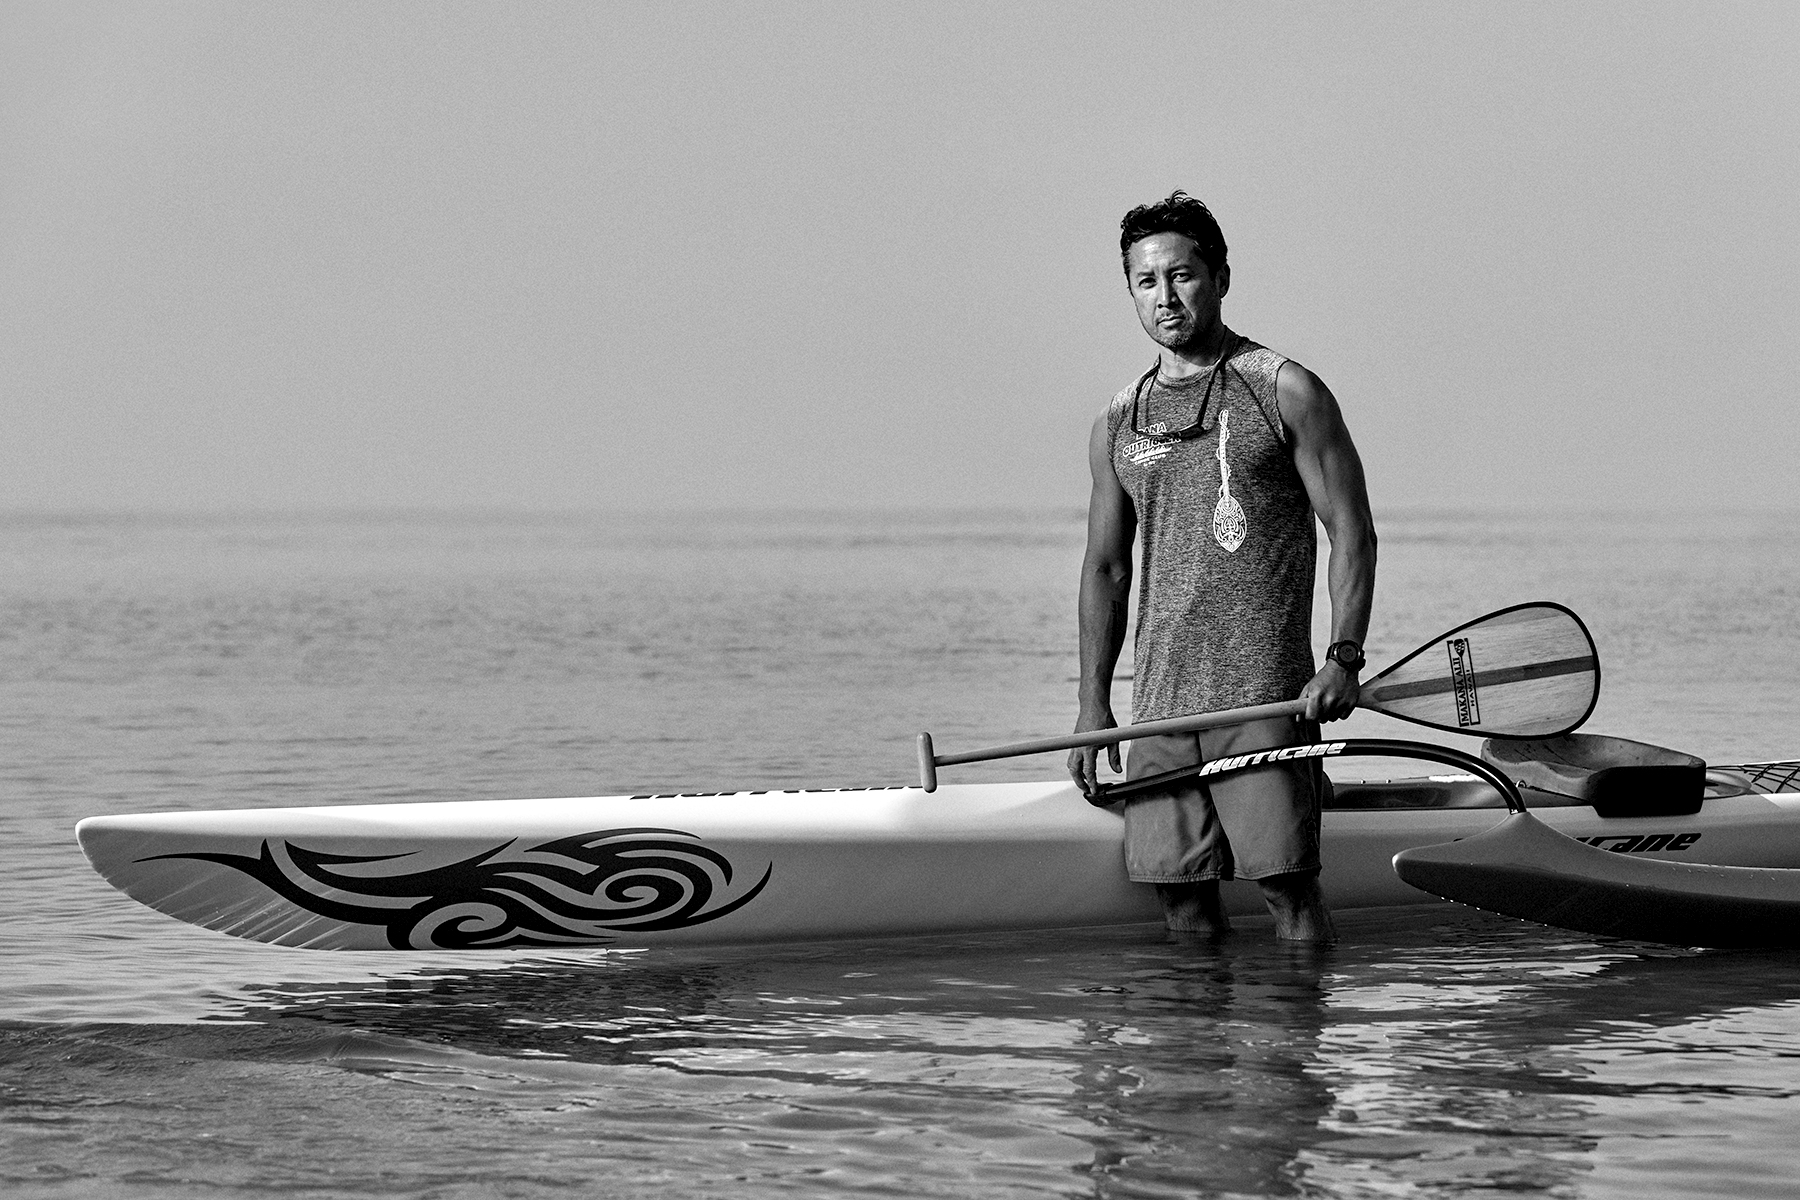 The Outrigger film and portraits photographed and directed by Scott Council